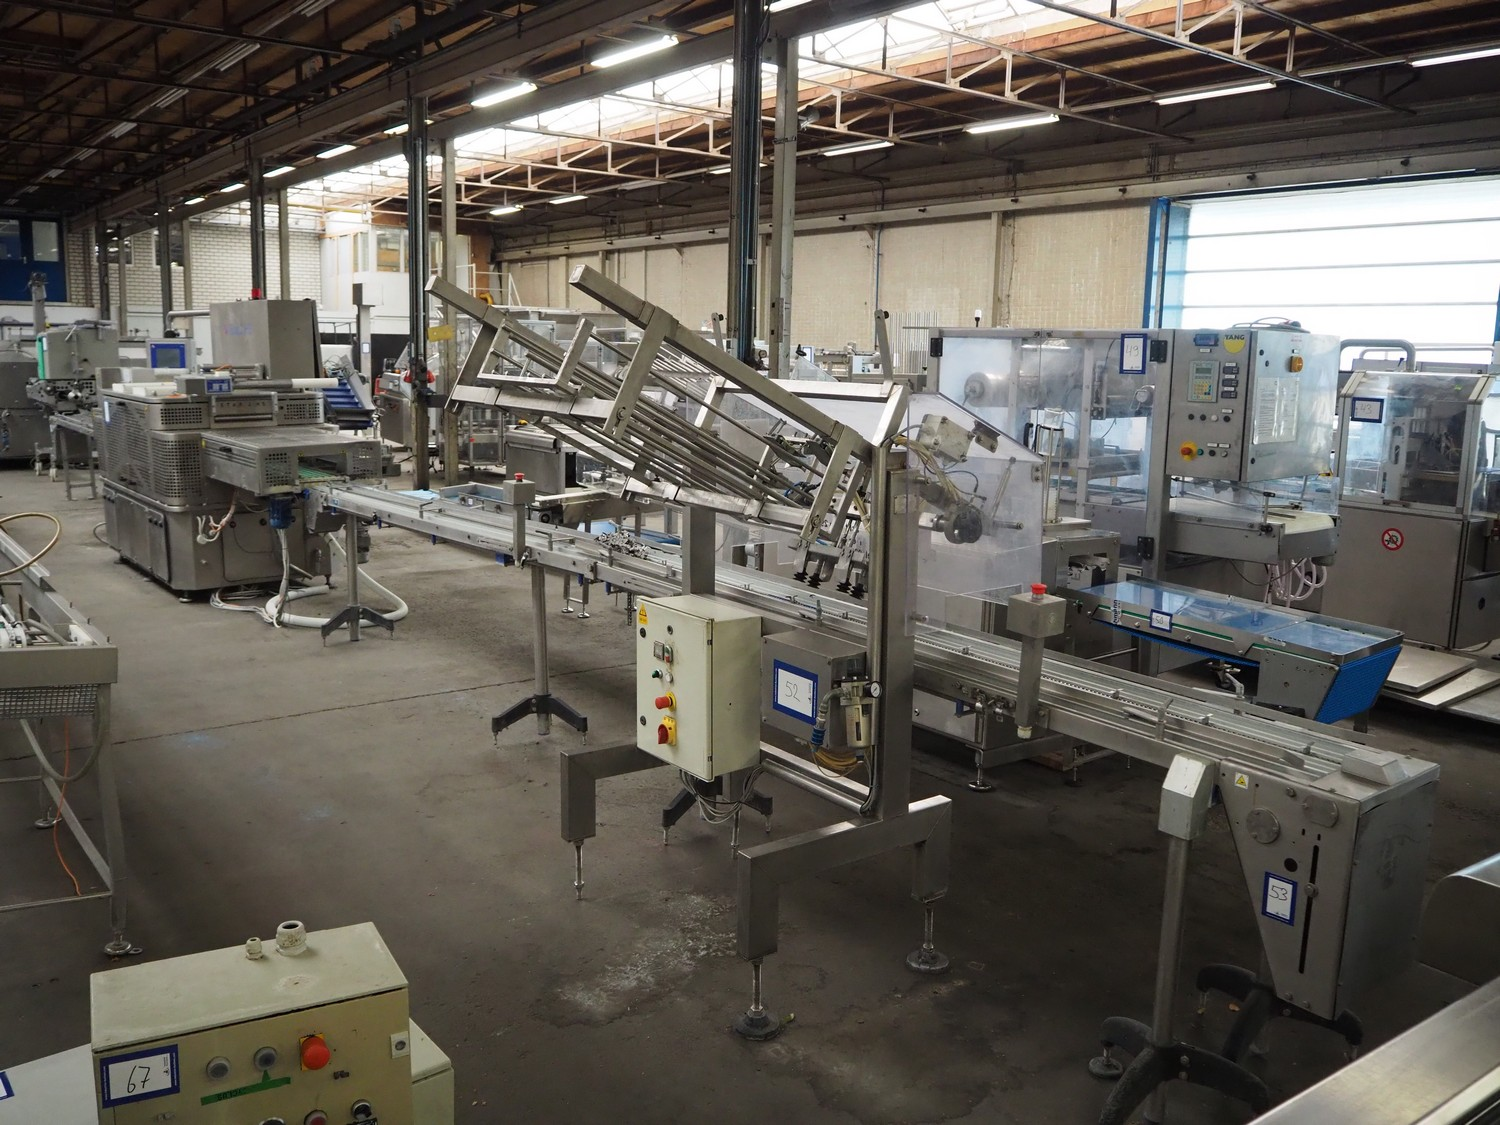 CFS - Traysealers - Food processing - Online auction